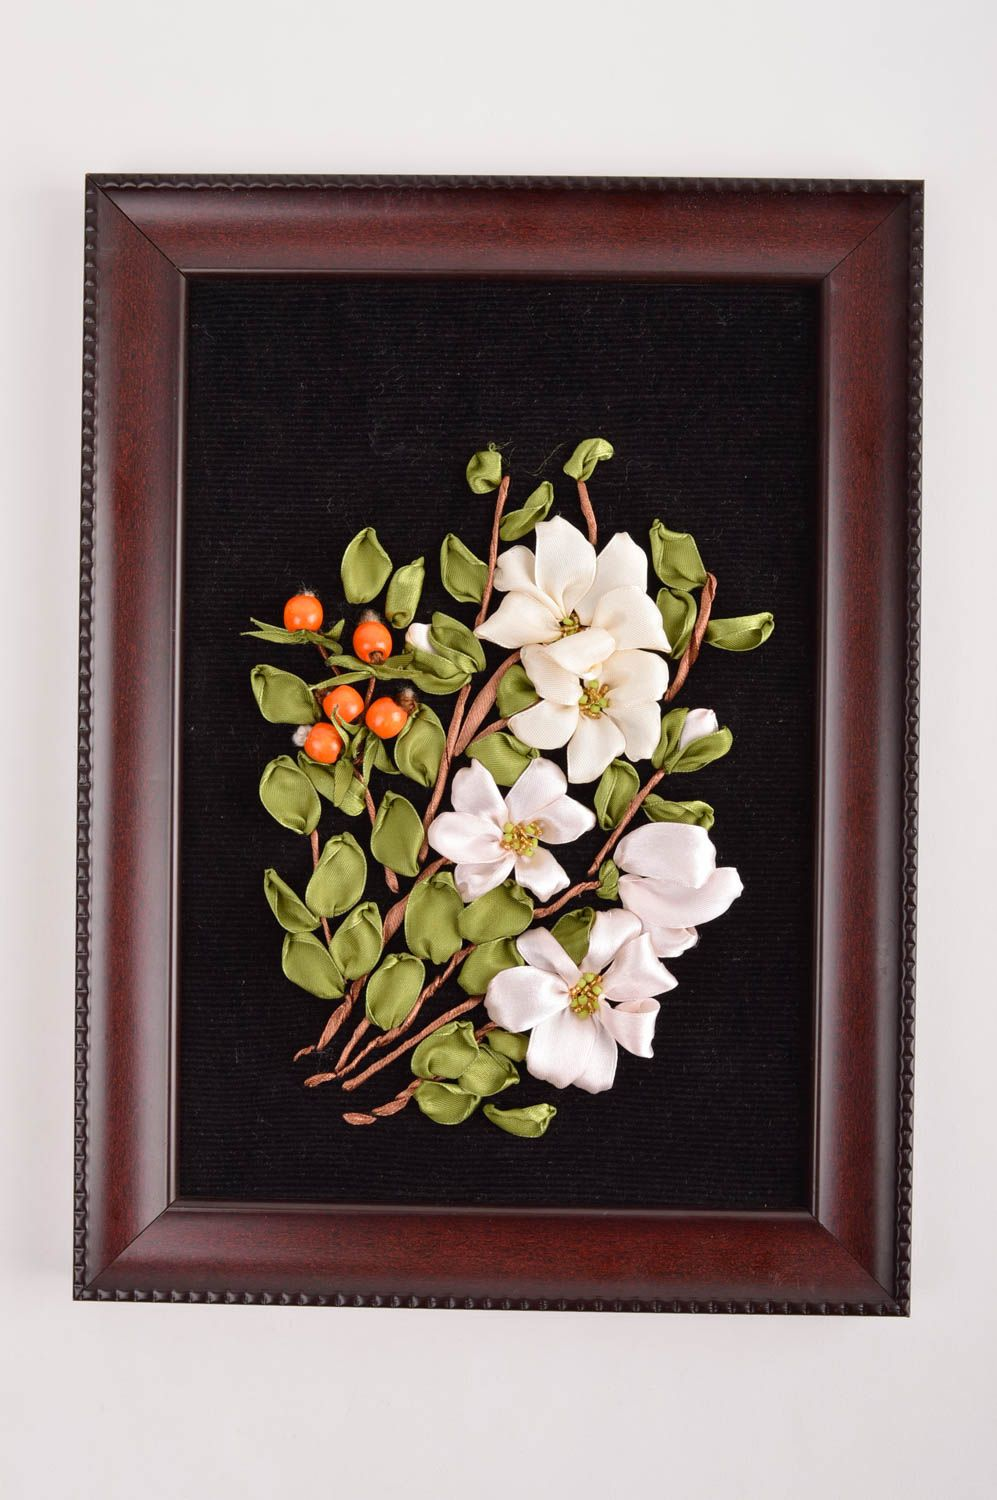 Madeheart gt handmade ribbon embroidery wall panel picture